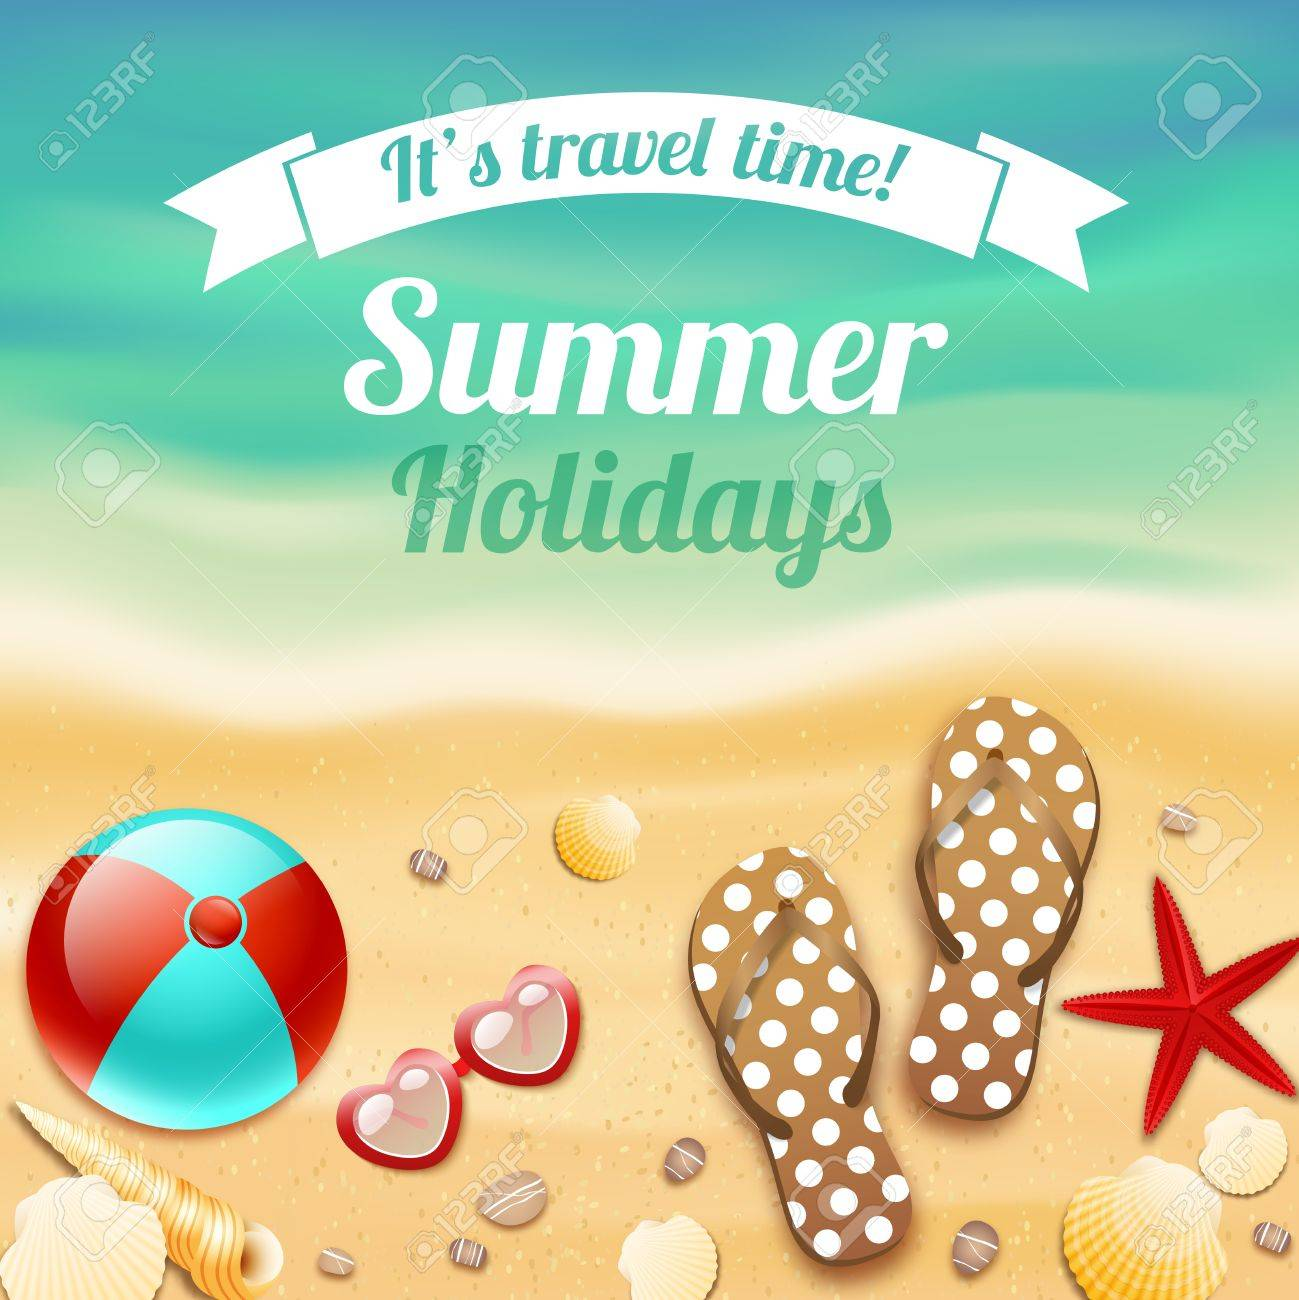 Summer Holiday Vacation Travel Background Poster With Beach Accessories Sunglasses Sandals And Starfish Illustration Stock Vector